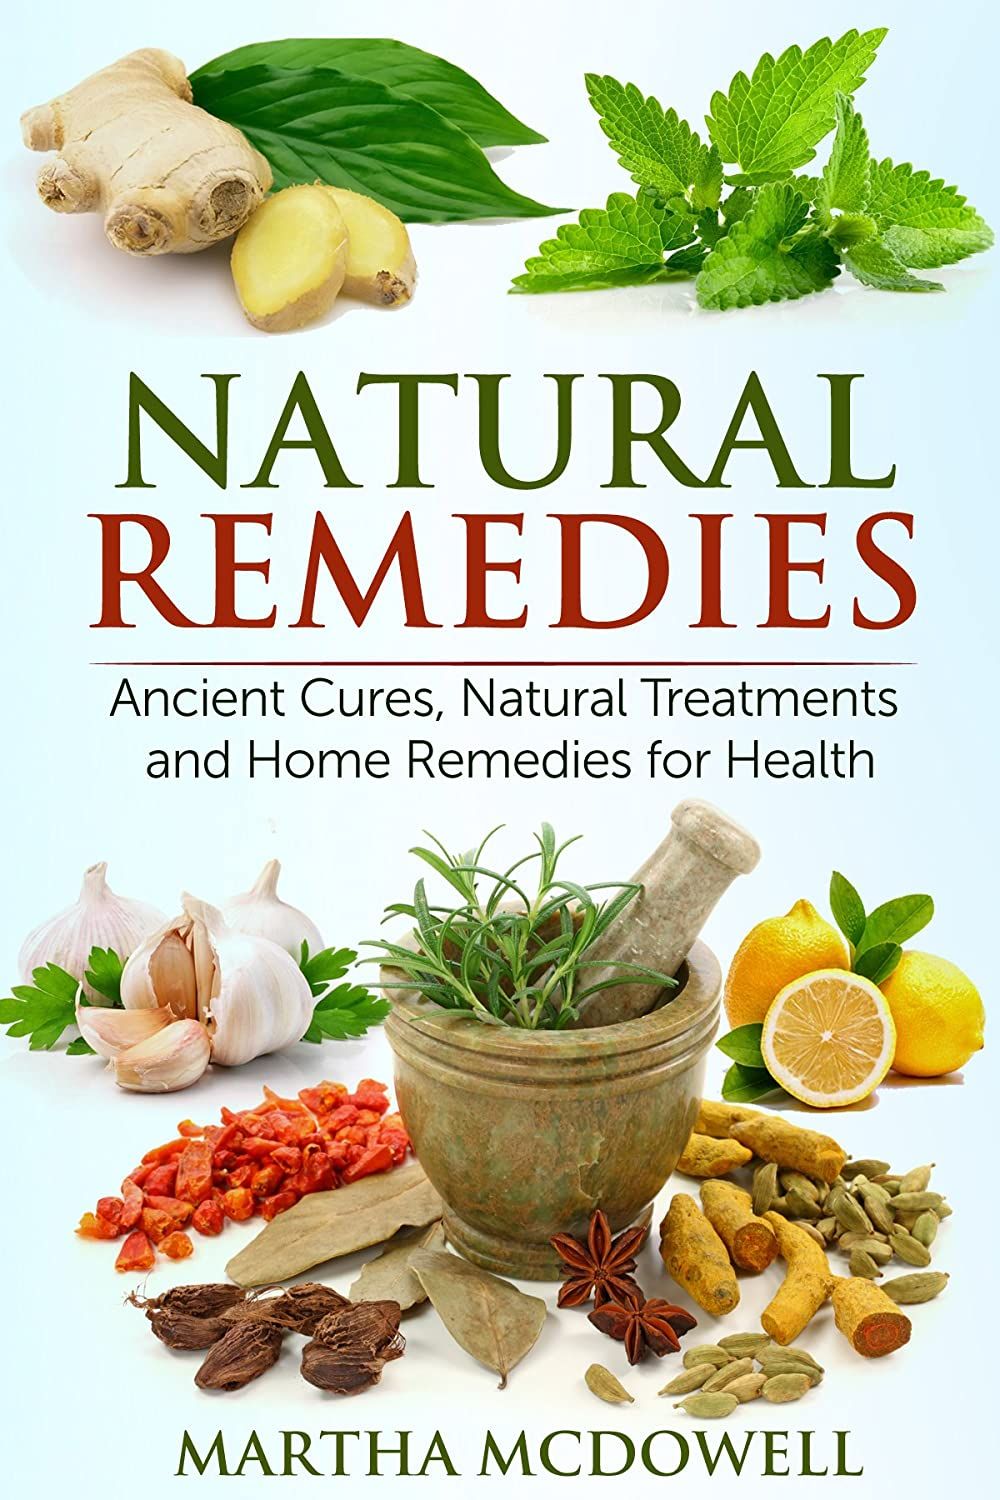 http://www.amazon.com/Natural-Remedies-Treatments-Yourself-Overcome-ebook/dp/B00LD9HK1E/ref=as_sl_pc_ss_til?tag=lettfromahome-20&linkCode=w01&linkId=BZRT2S6WBMW33KU5&creativeASIN=B00LD9HK1E